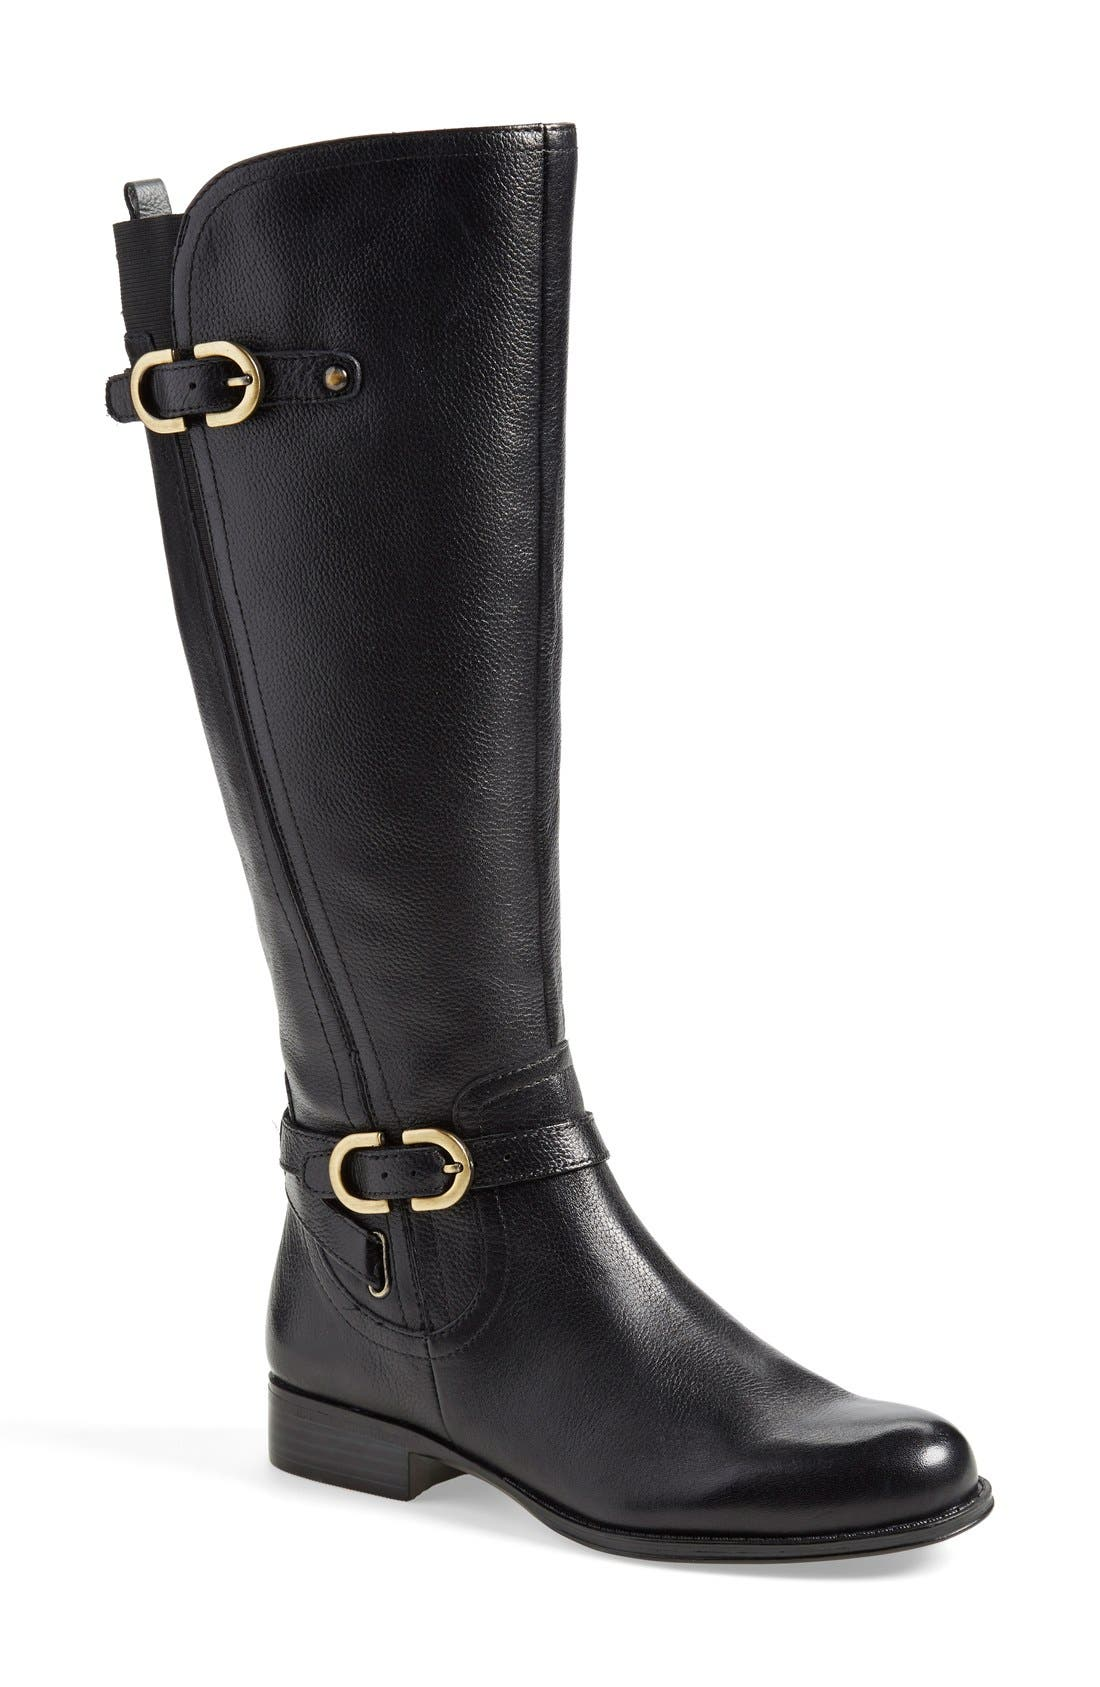 Alternate Image 1 Selected - Naturalizer 'Jennings' Knee High Boot (Women) (Wide Calf)